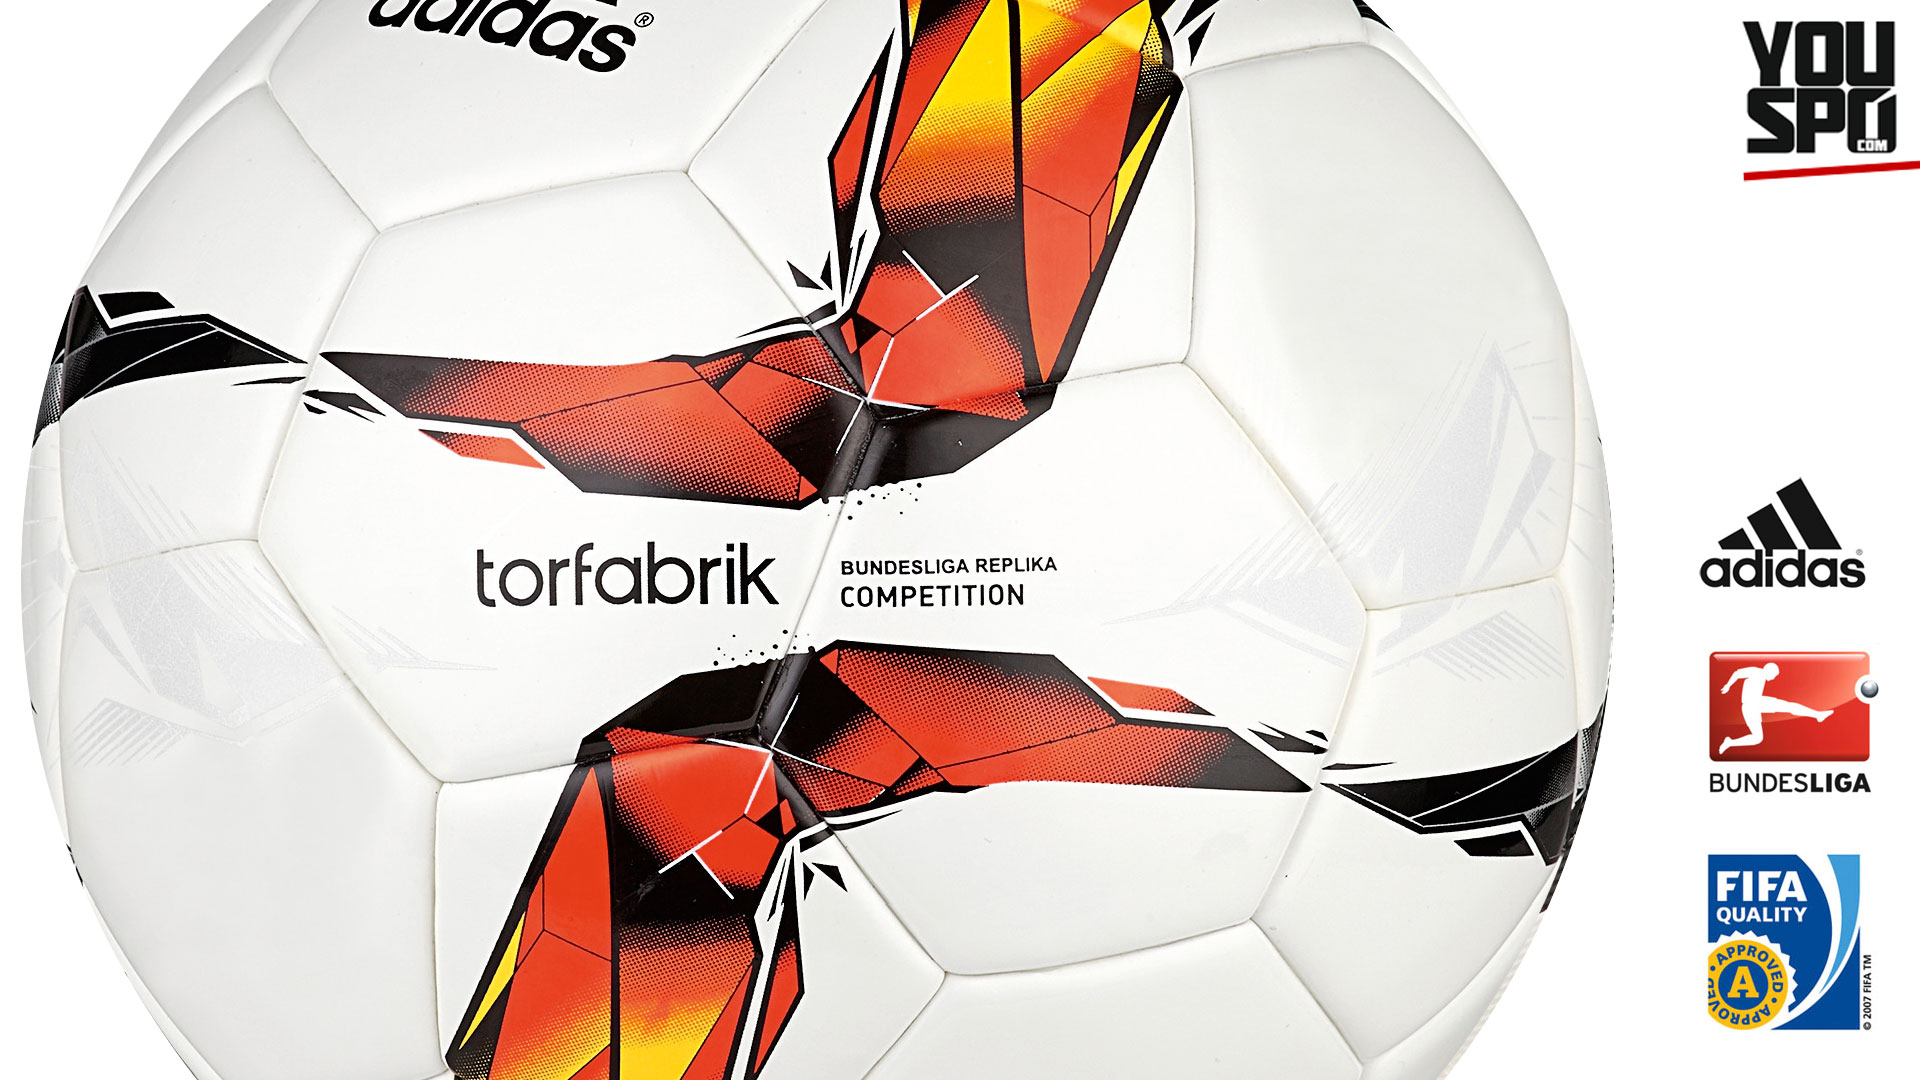 Adidas Torfarbik 15/16 Competition (2015-2016)